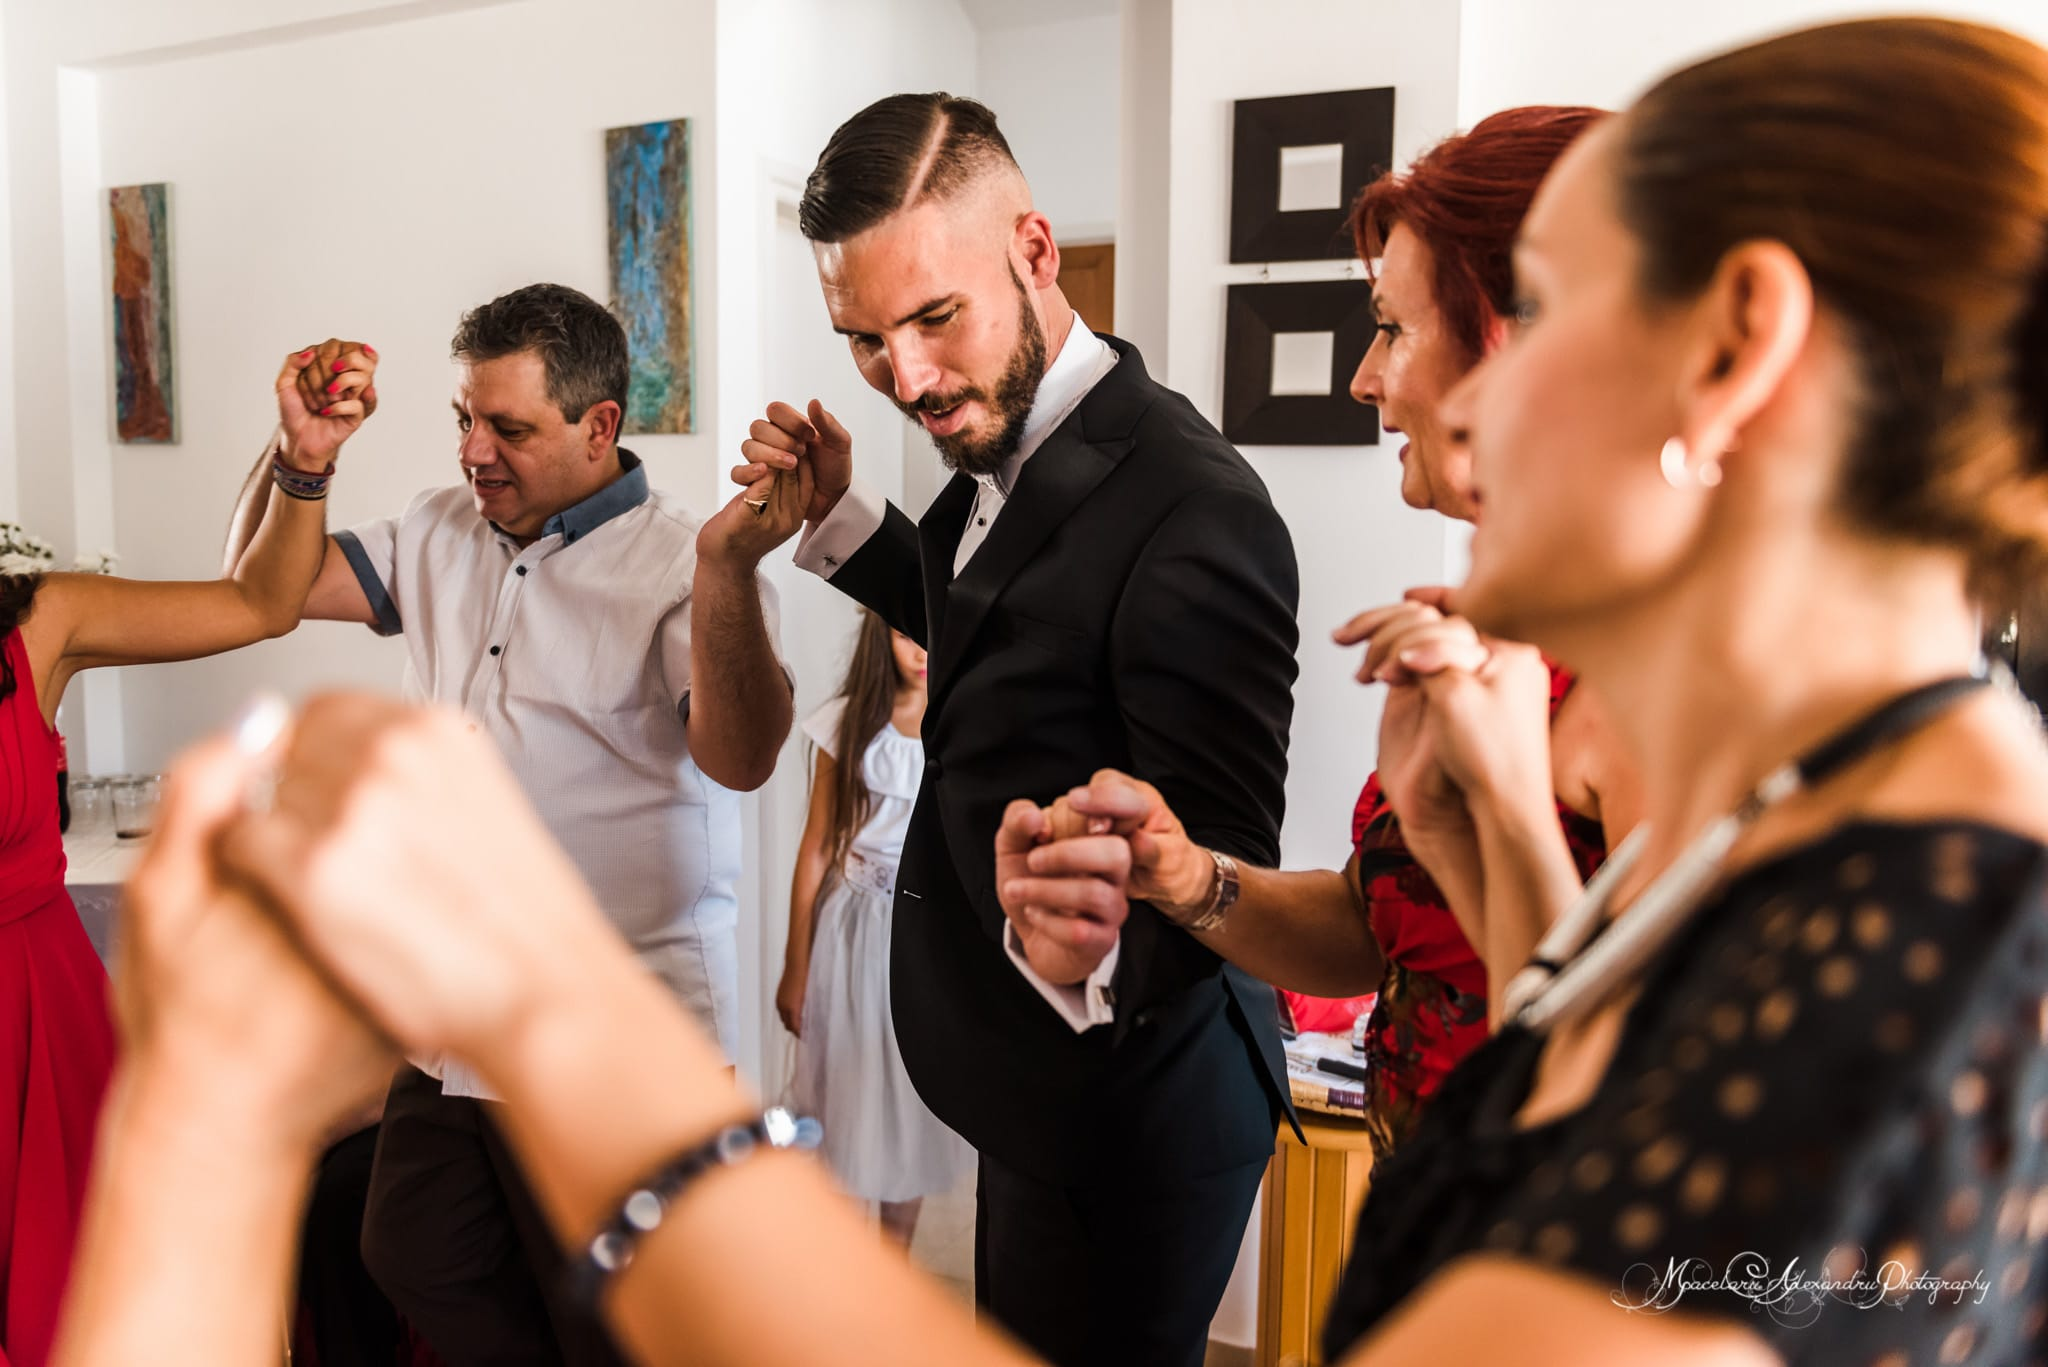 Wedding photography in Paphos - The groom is dancing with the wedding party